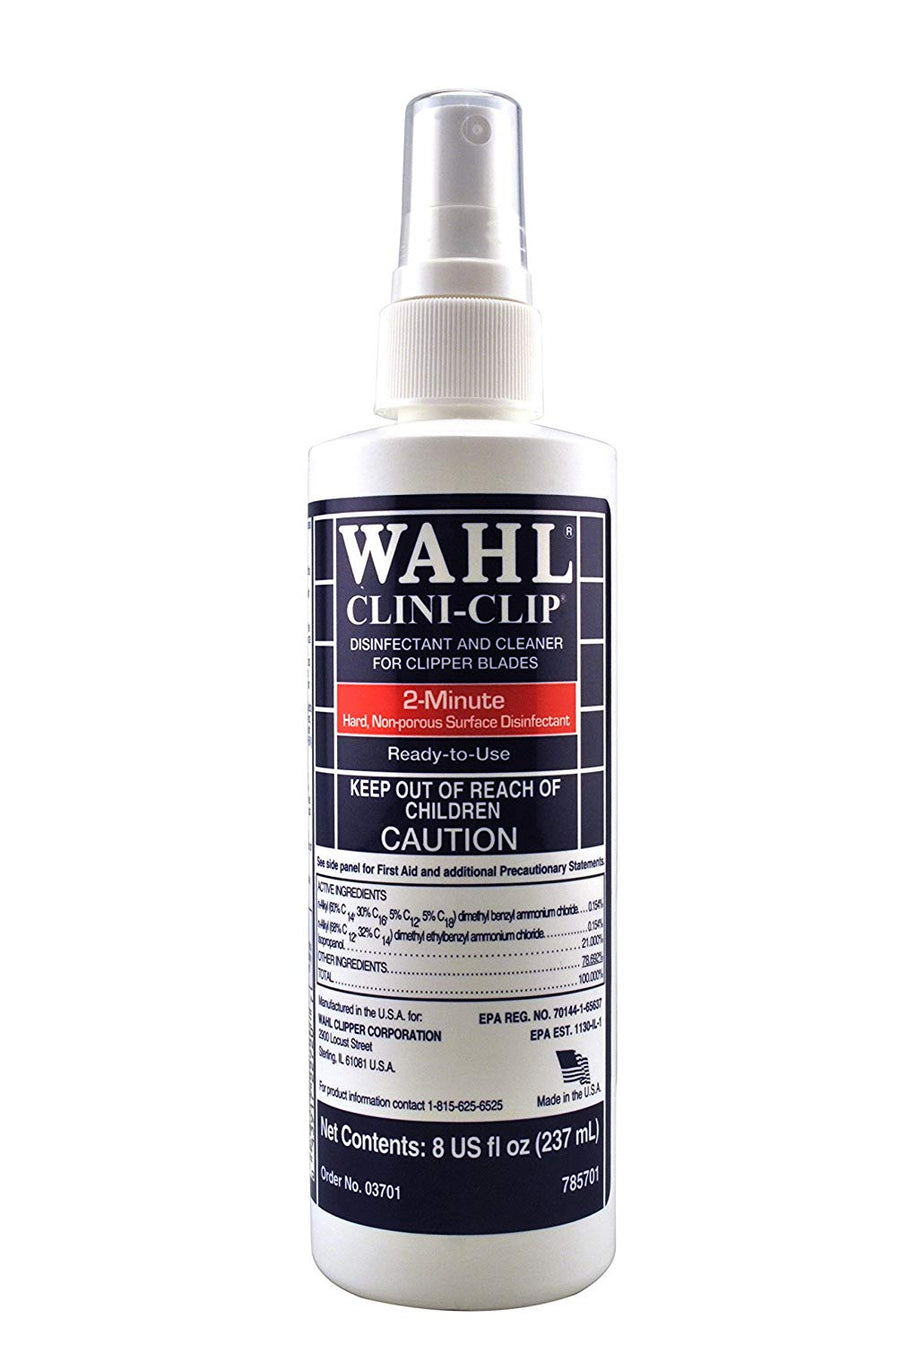 Wahl Clini-Clip Disinfectant and Cleaner Spray